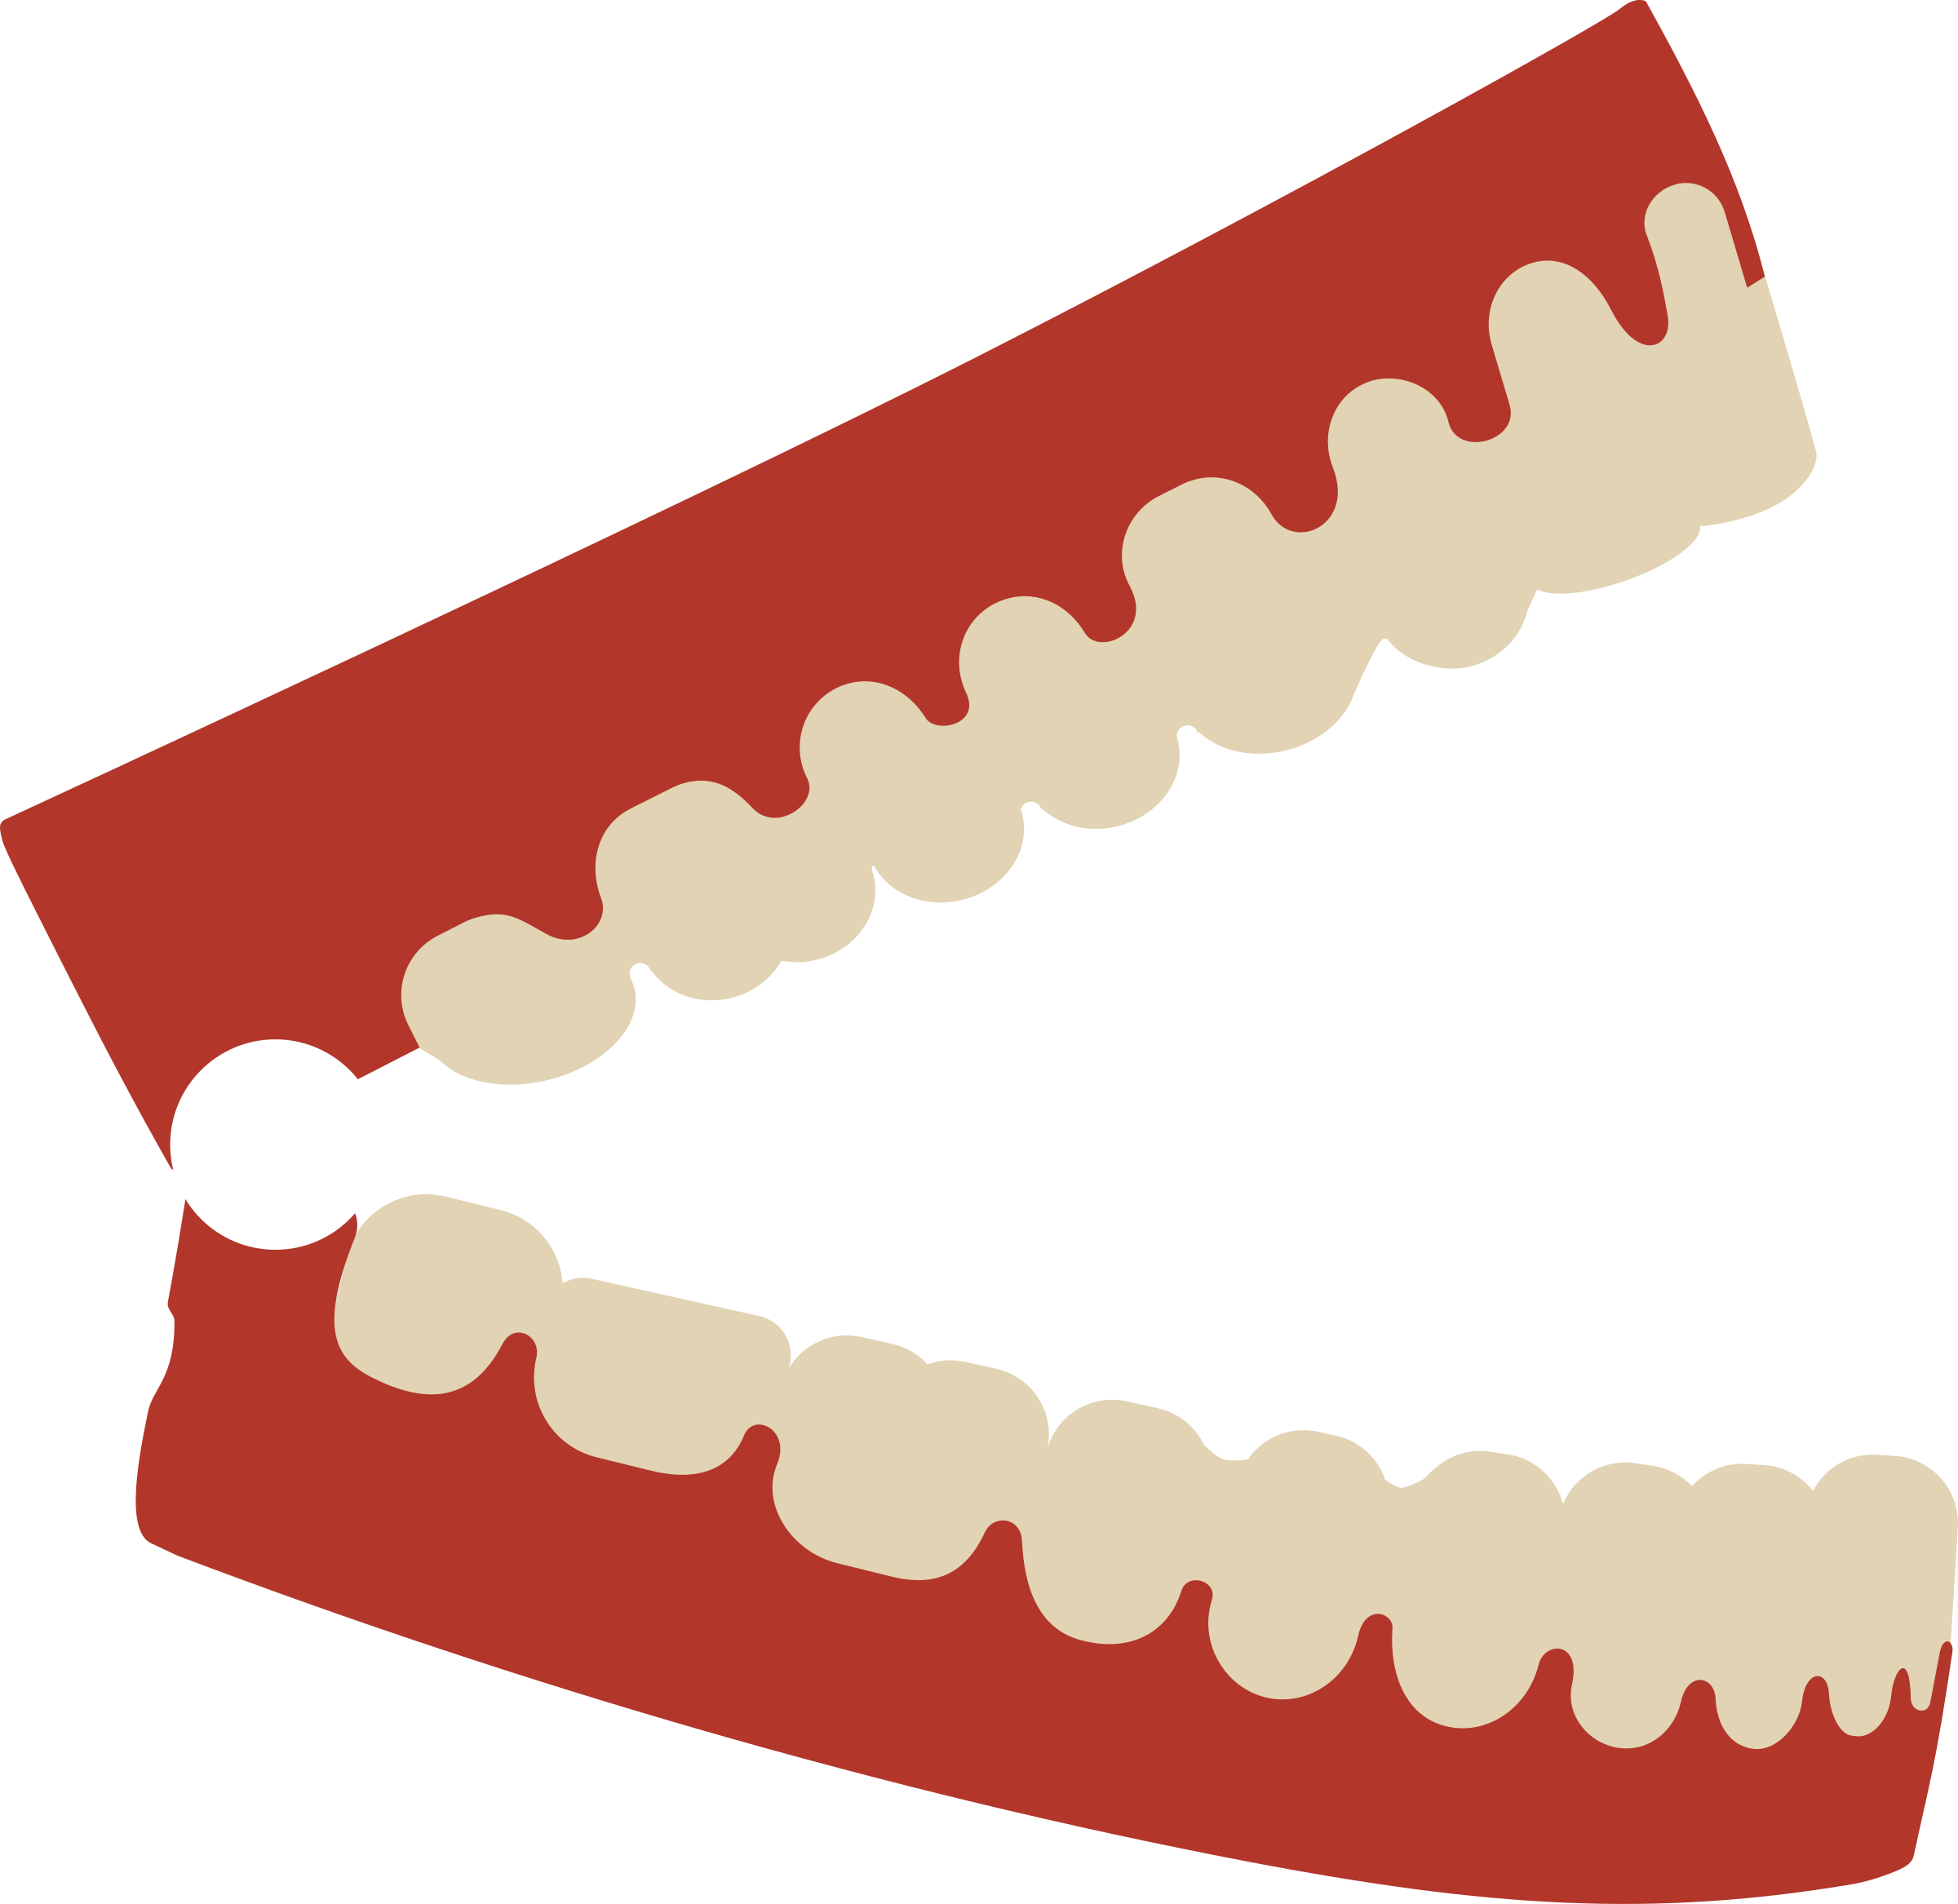 Mouth clipart bite. Chattering teeth